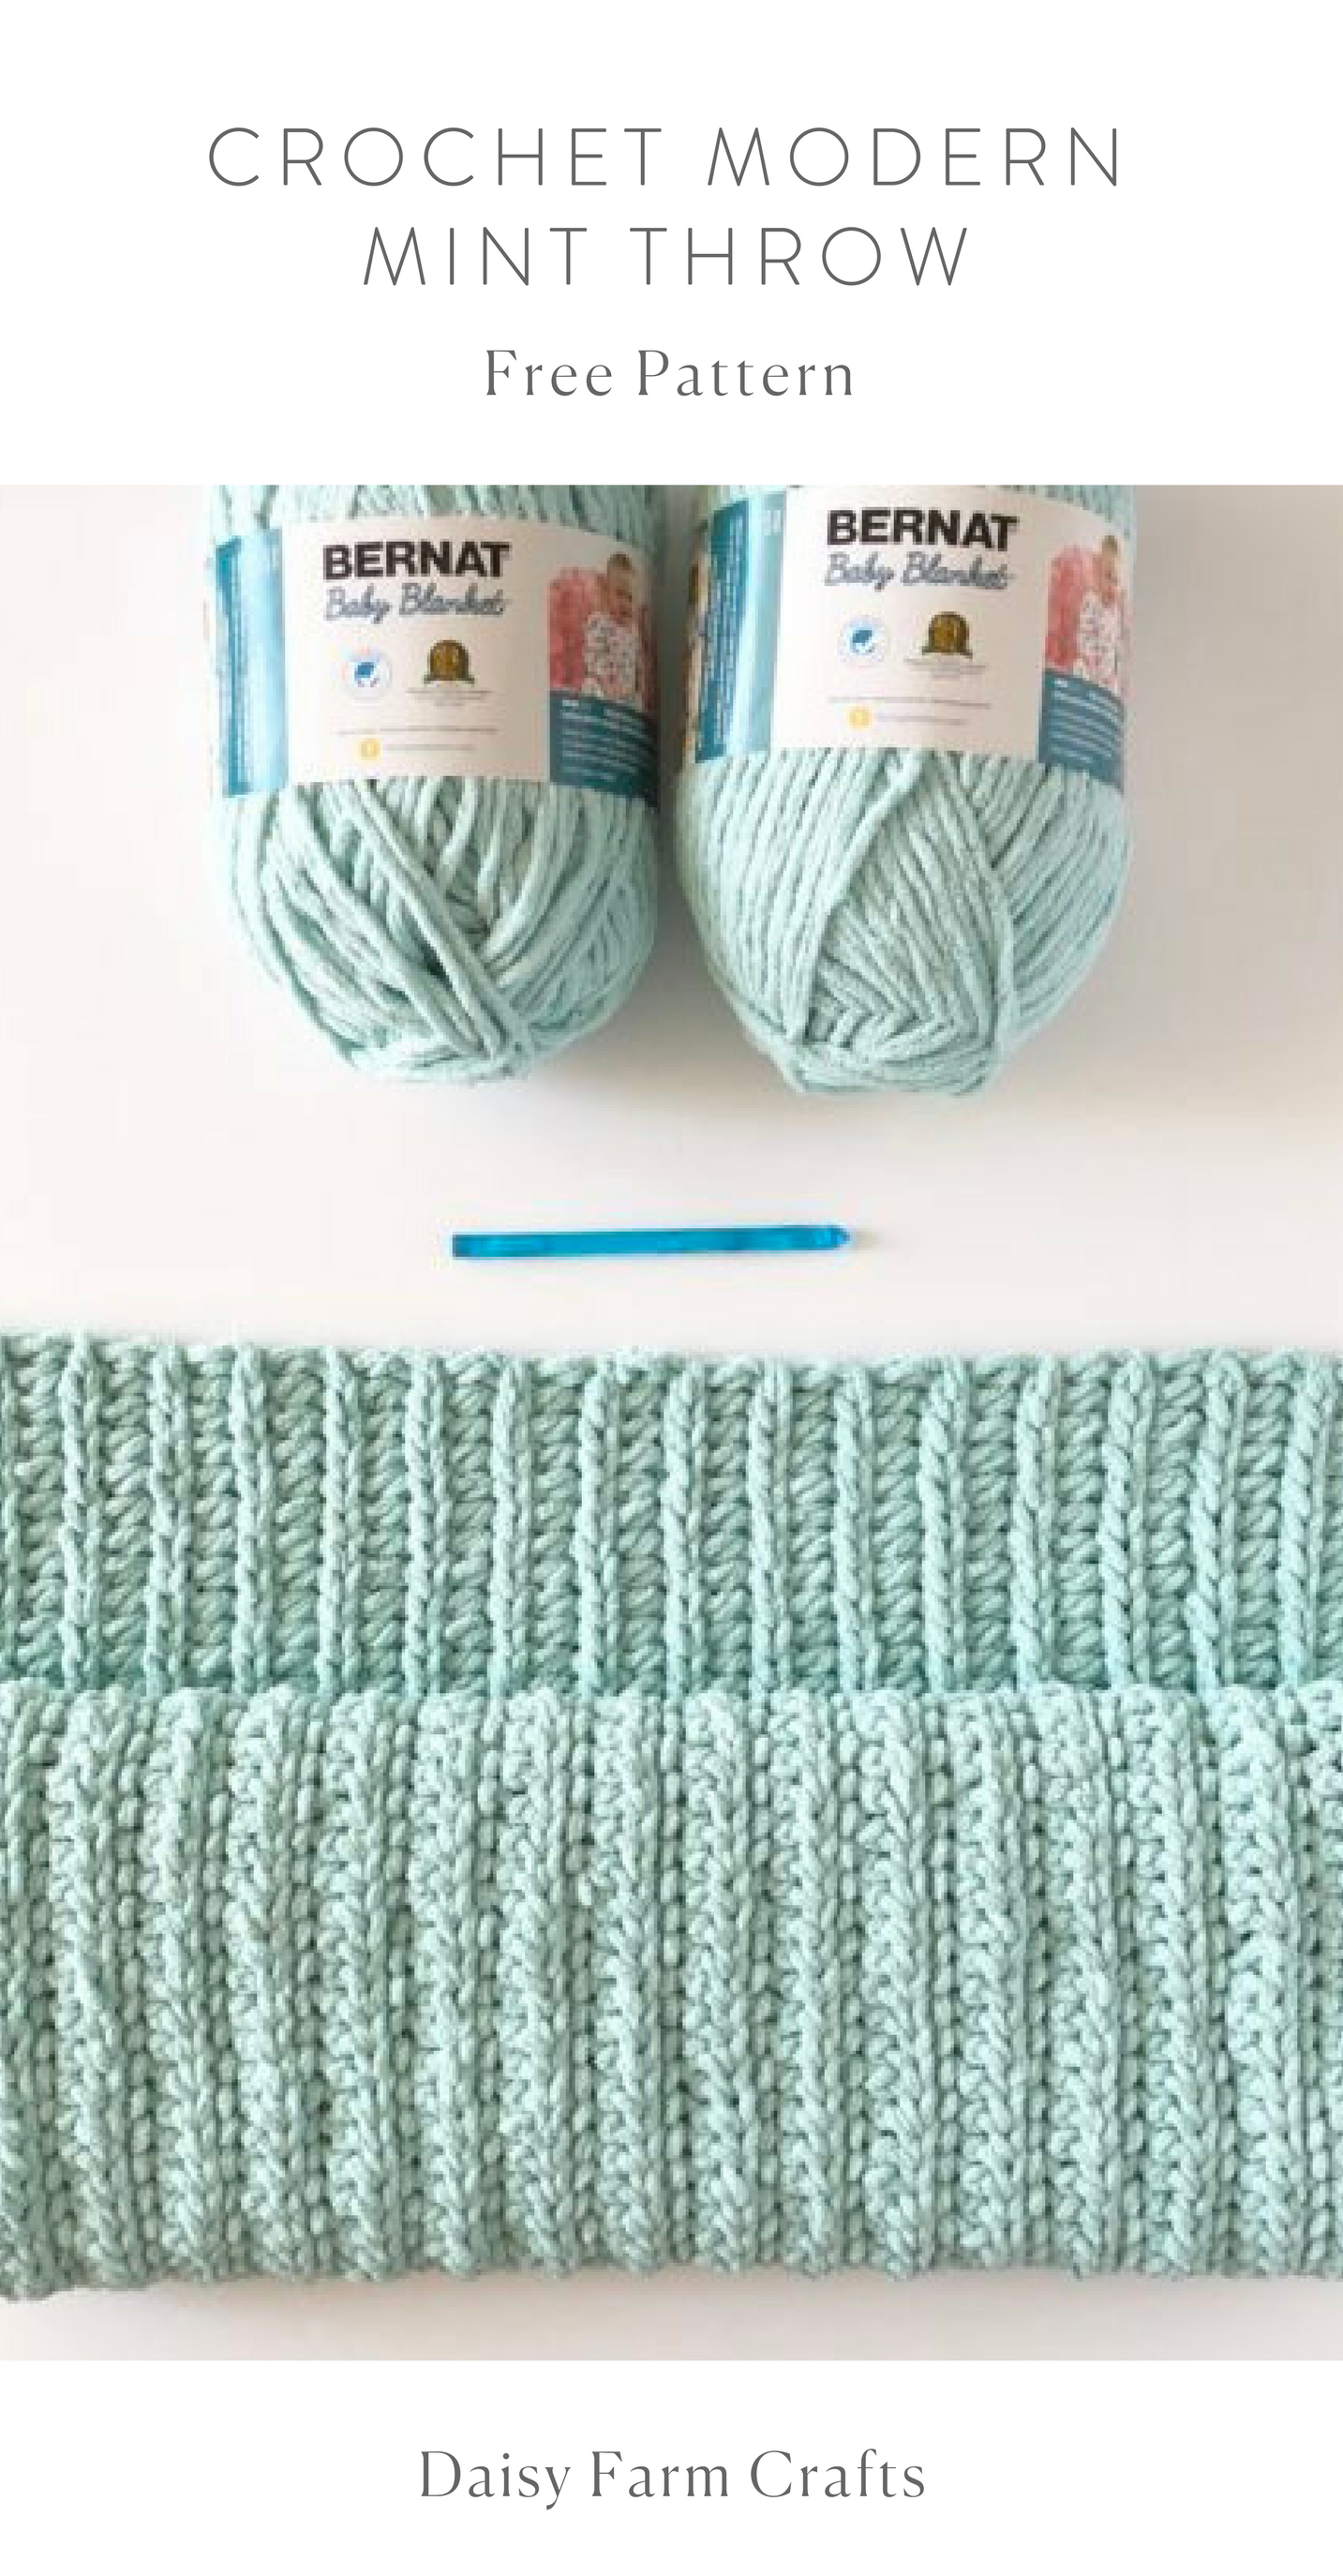 Free Pattern - Crochet Modern Mint Throw | Afghan Crochet ...